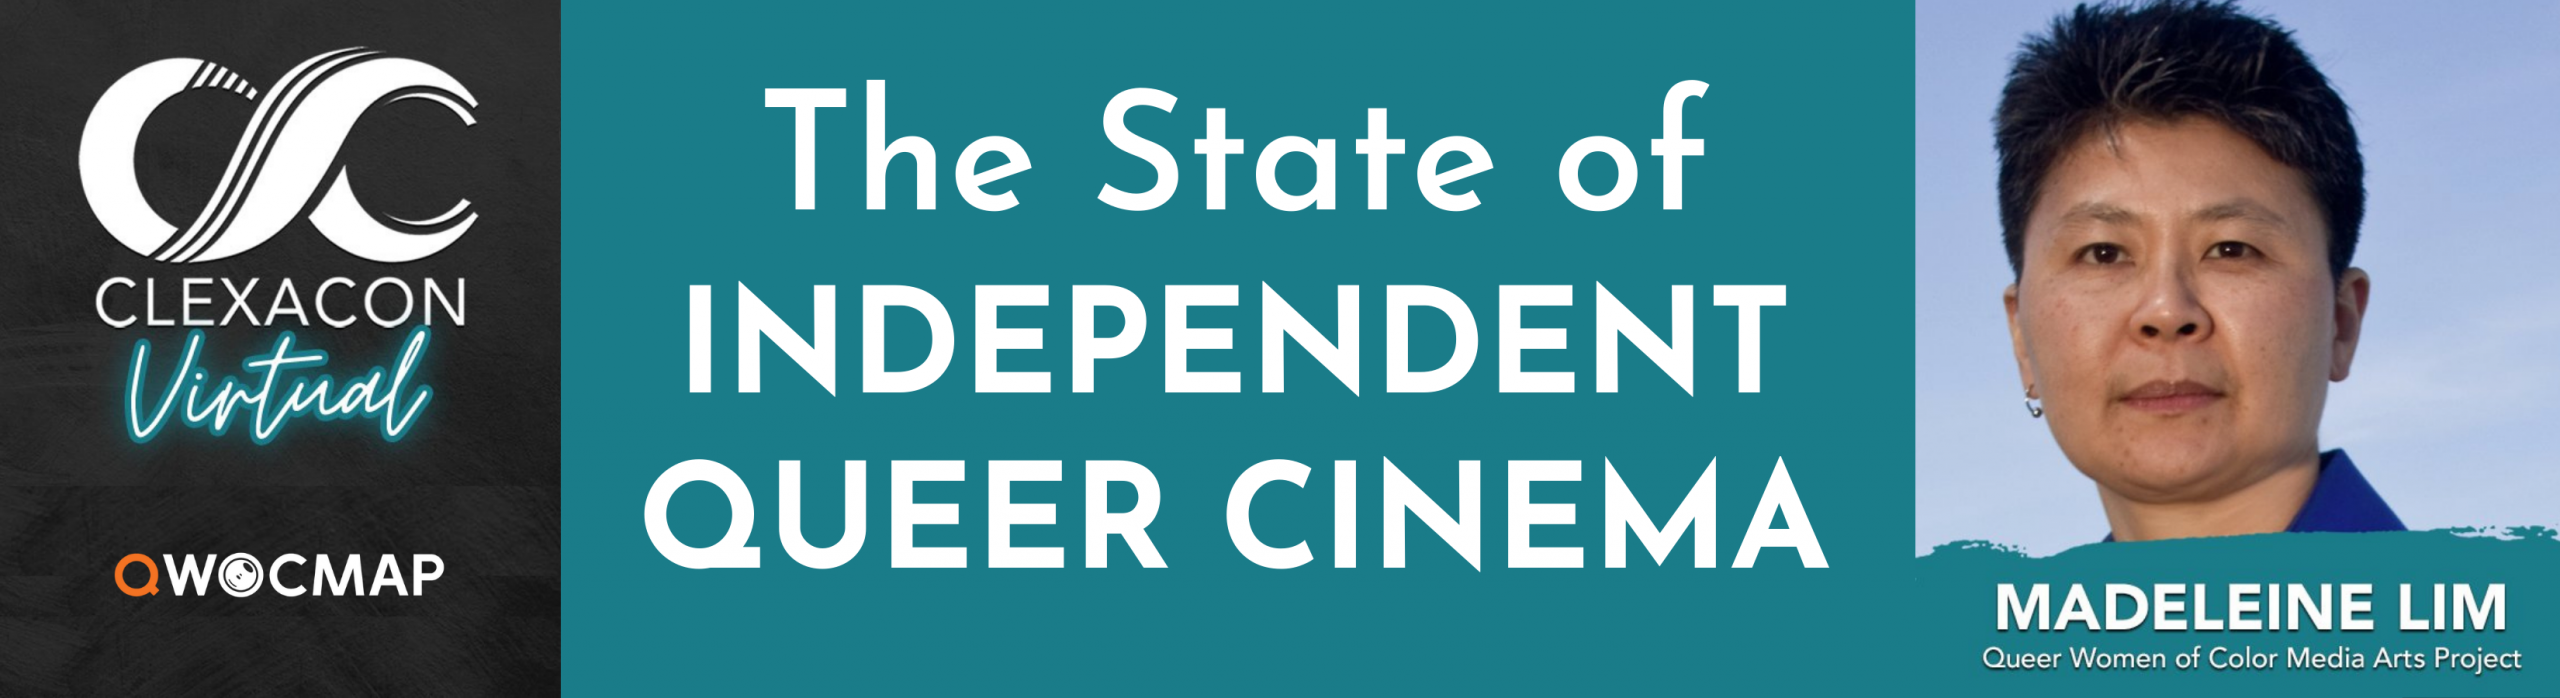 On a turquoise background, white text reads The State of Independent Queer Cinema. To the left, on a black background, is the ClexaCon Virtual logo and the QWOCMAP logo. On the right is a headshot of an Asian person with light brown skin, short black and gray hair, and brown eyes, wearing a bright blue collared shirt and one earring. On the photo, the caption, which is white text on a gray transparent background, reads With Founding Executive Director Madeleine Lim.